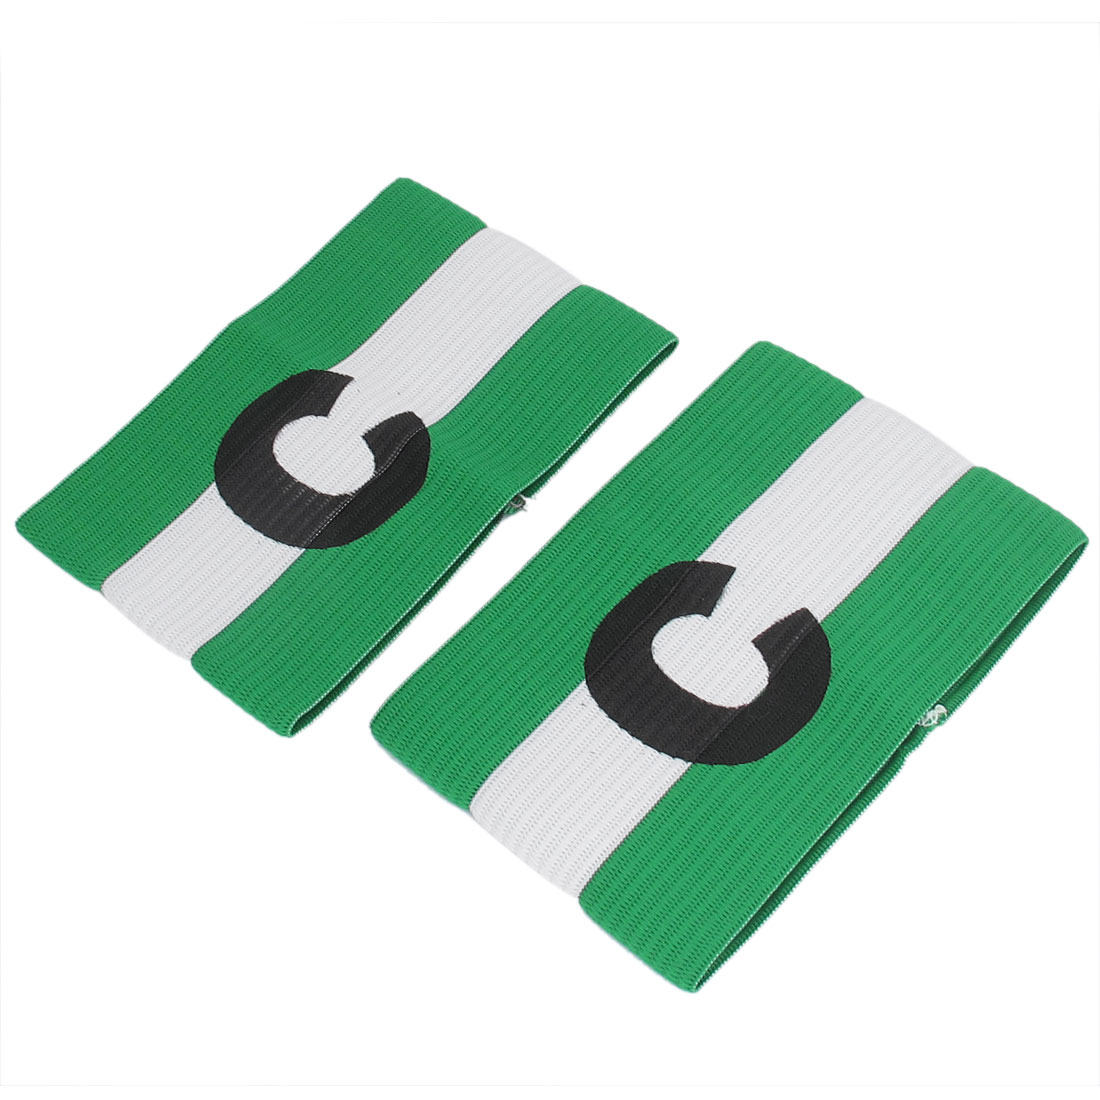 2pcs Green Blue C Printed Stretchy Football Soccer Sports Match Captain Armband Badge